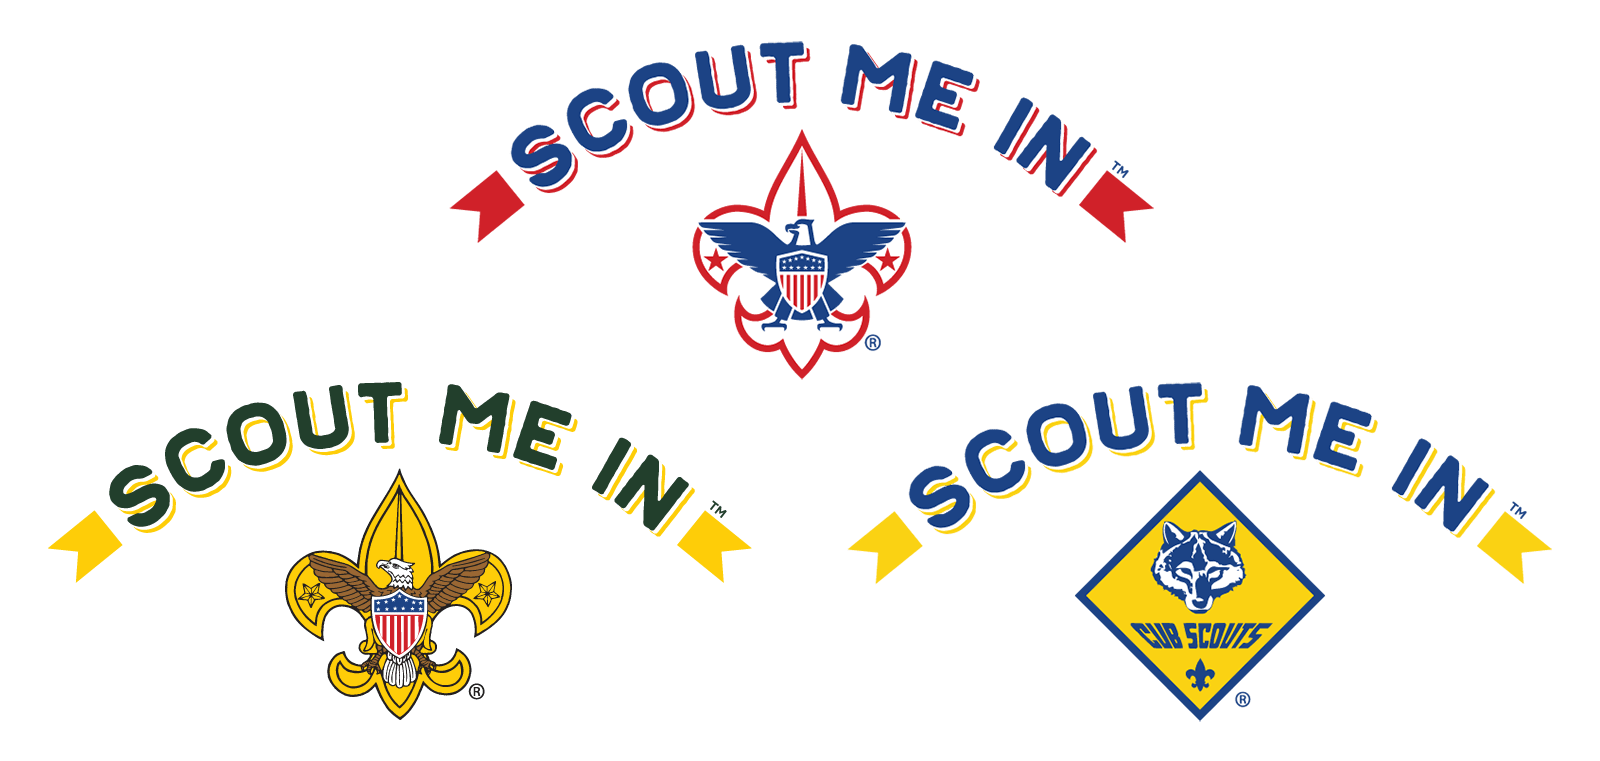 Scout Me In Triple Logo